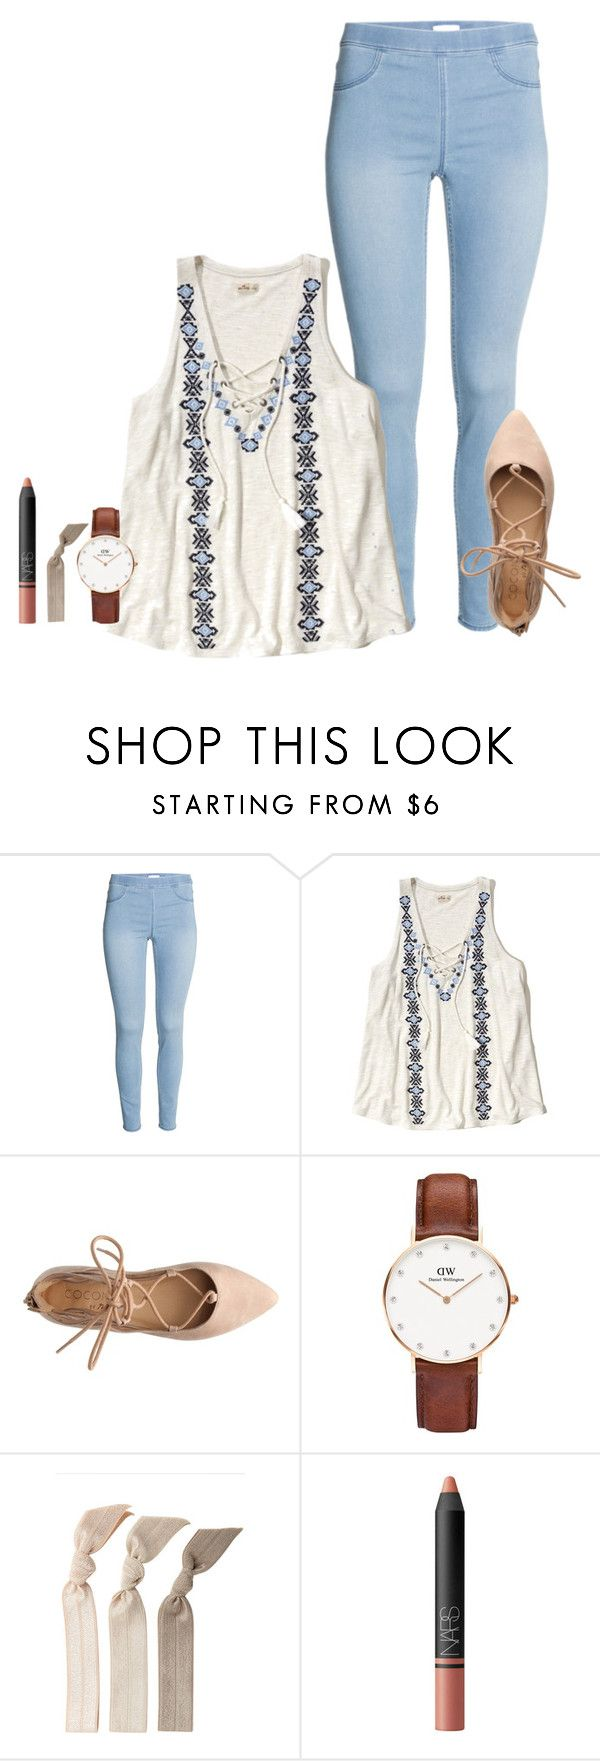 """them shoes "" by thatprepsterlibby ❤ liked on Polyvore featuring Hollister Co., Daniel Wellington, Emi-Jay, NARS Cosmetics, women's clothing, women, female, woman, misses and juniors"